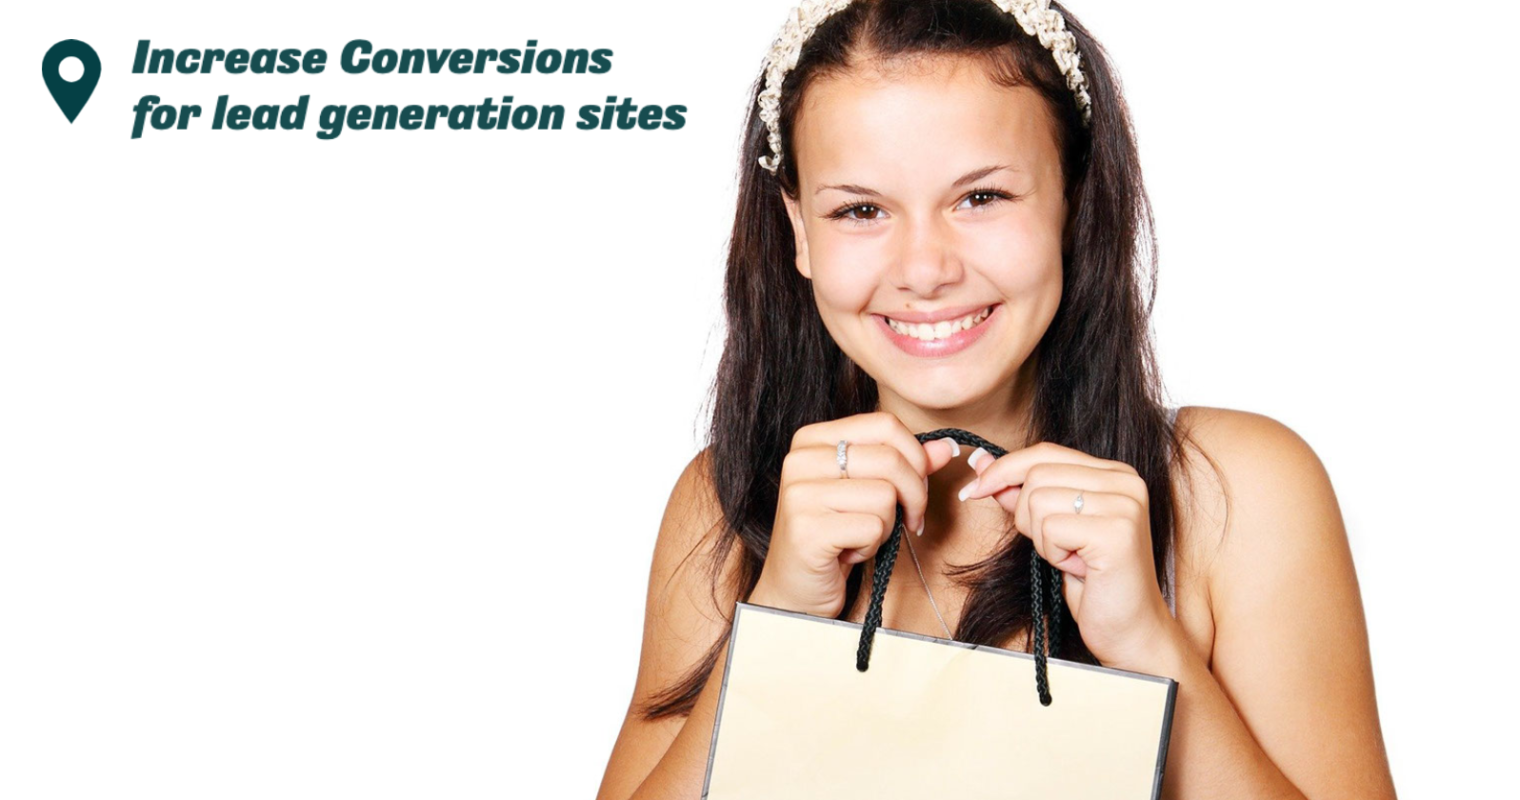 5 Simple Conversion Rate Optimization Tips for Lead Generation Sites